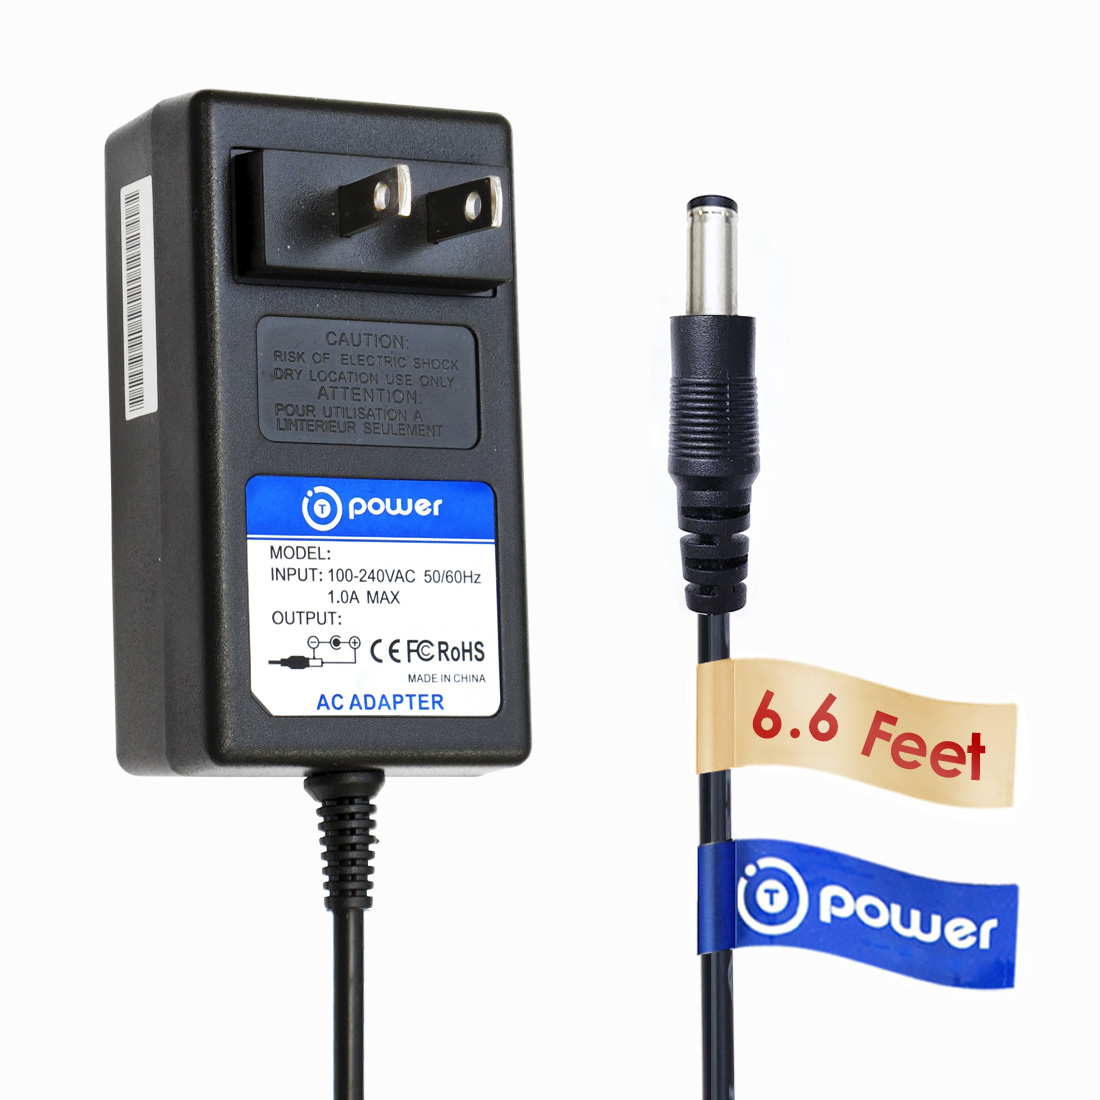 T-Power 12v ( 6.6ft Long Cable ) Ac Adapter For Iomega eGo HARD DRIVE RDHD-U RDHD-U2 12v S/N 94A83233B9 P/N 31759100 / Iomega HDD Scanner Onetouch Visioneer 7100 8100 / Sagem TV Box Dtr67320t Router